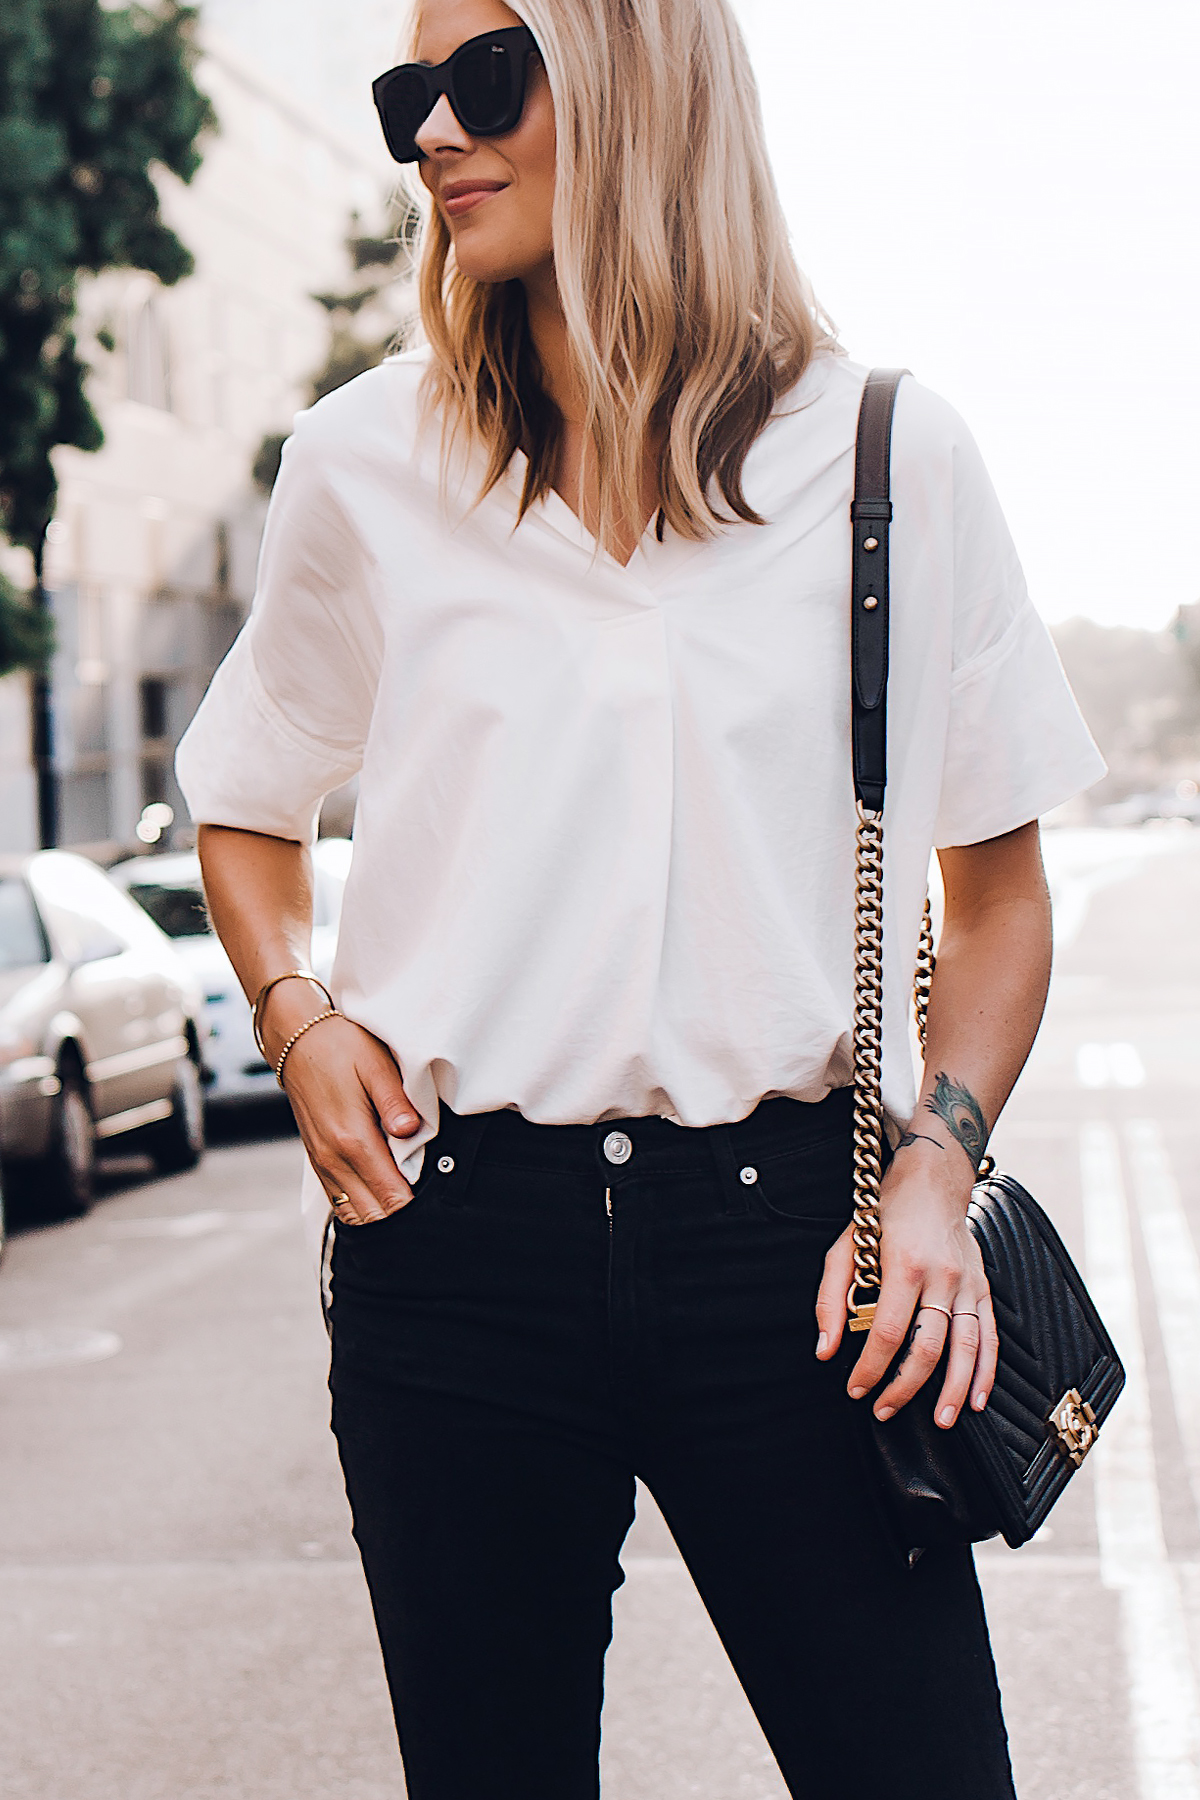 Blonde Woman Wearing Madewell Short Sleeve White Shirt Black Jeans Chanel Boy Bag Black Large Black Sunglasses Fashion Jackson San Diego Fashion Blogger Street Style